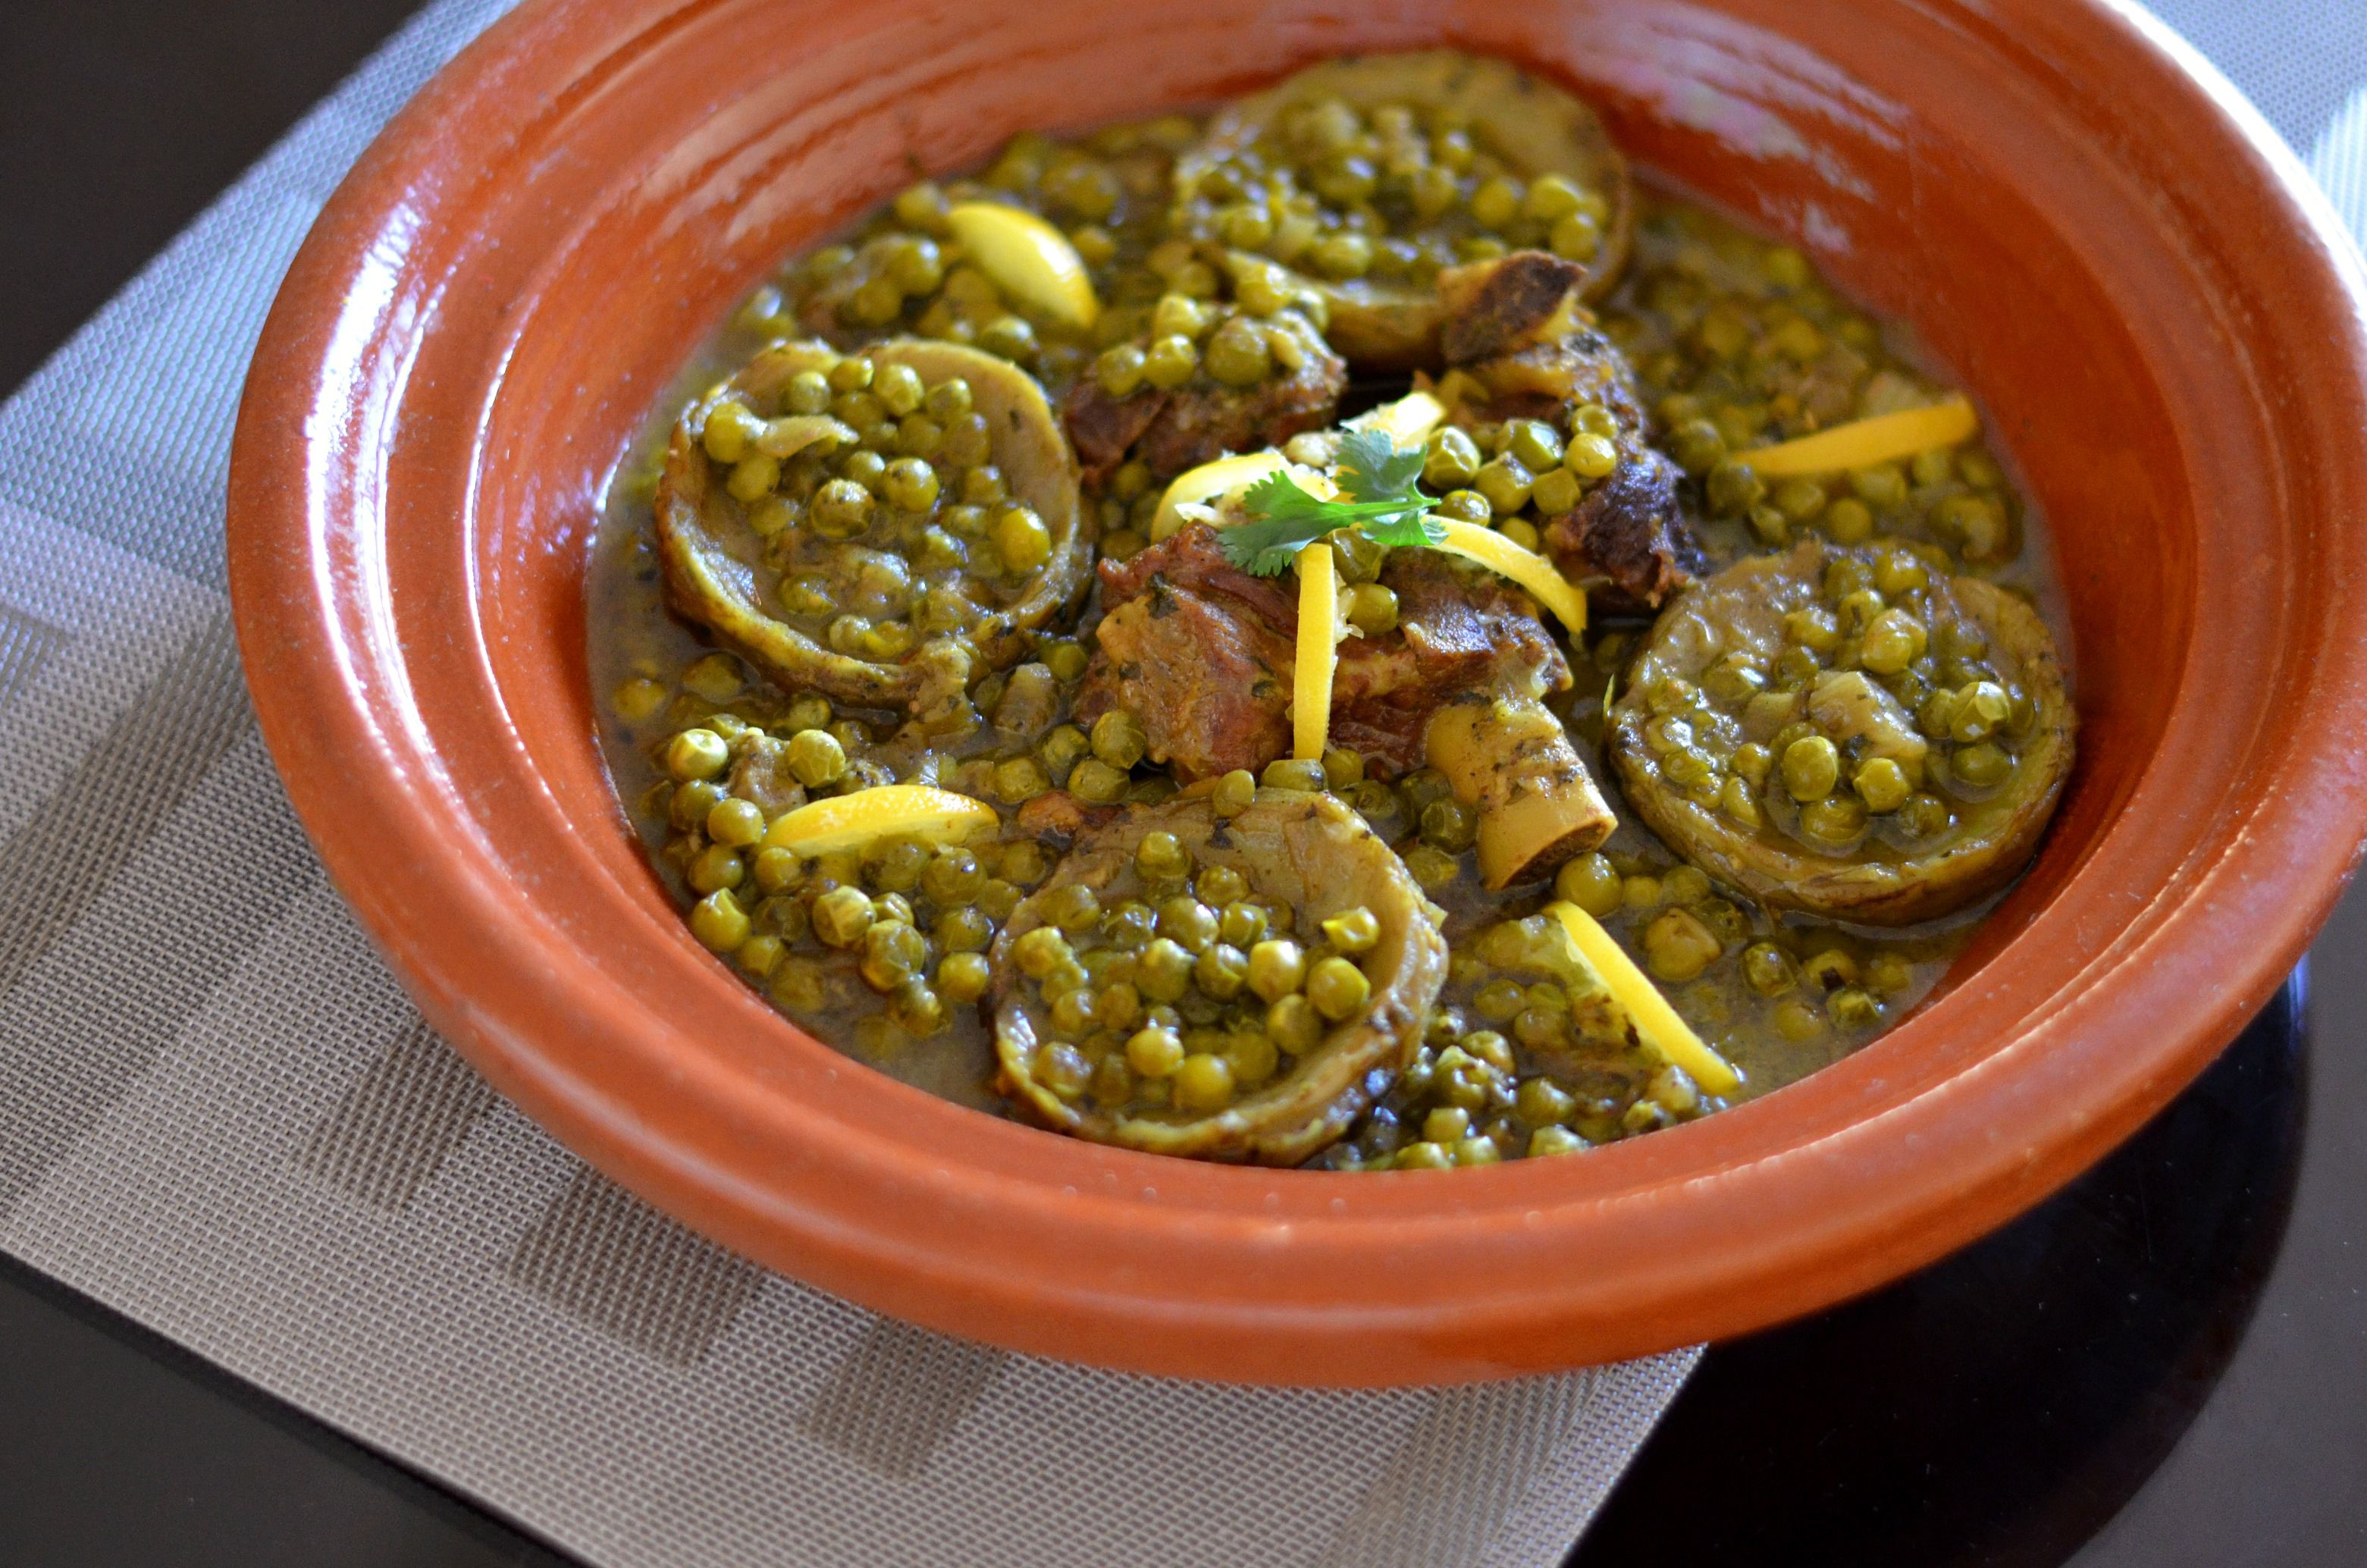 Moroccan Lamb Or Beef Tagine With Peas And Artichokes